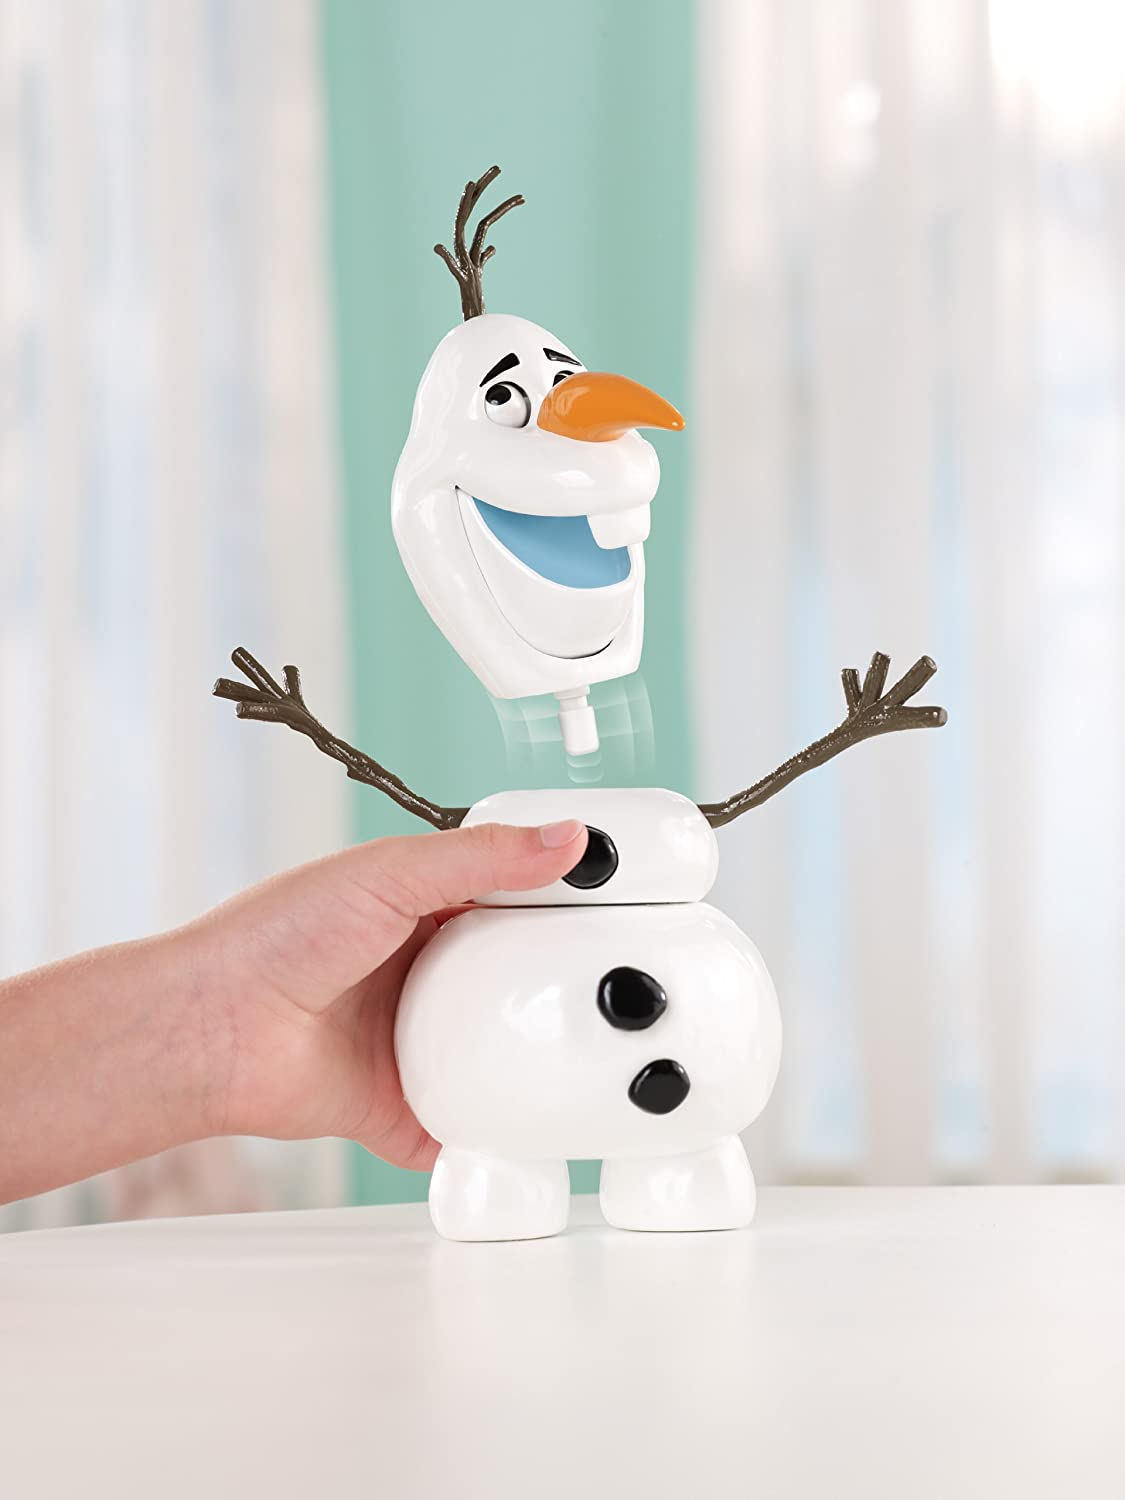 Olaf toy figure